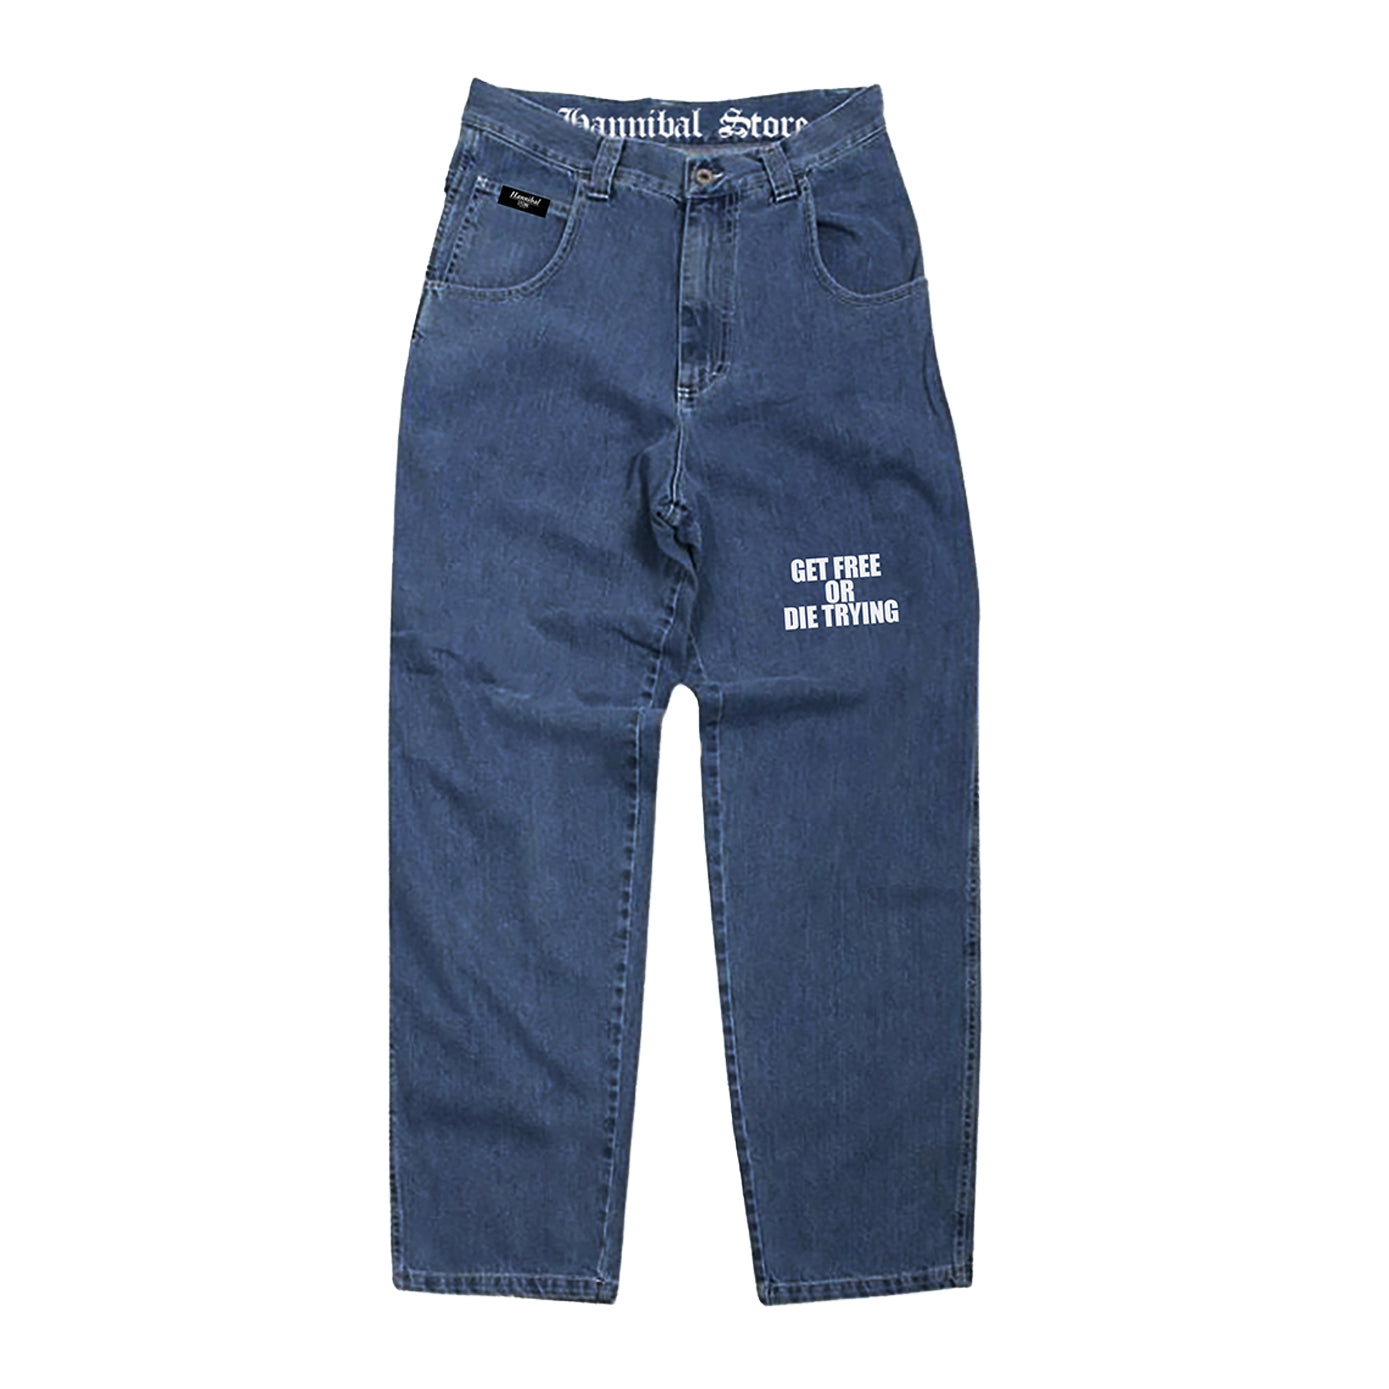 "HANNIBAL STORE DENIM ""GET FREE OR DIE TRYING"" STONE WASHED"